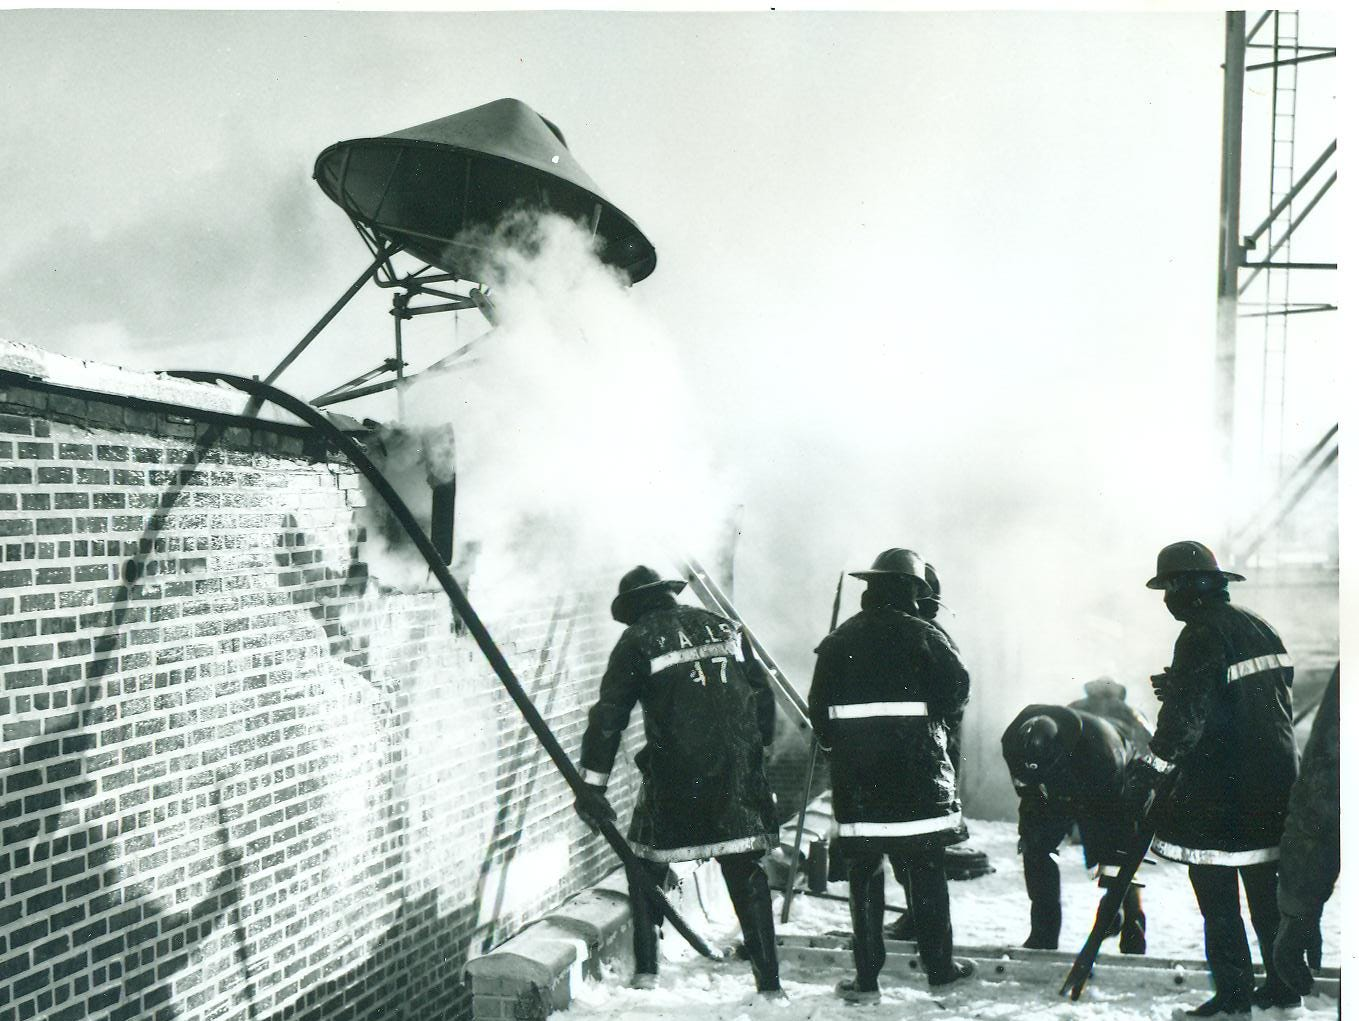 Firefighters jack-hammered a hole in the roof and doused flames using lowered fire hoses to battle a fire at Richmond's General Telephone headquarter in 1965.